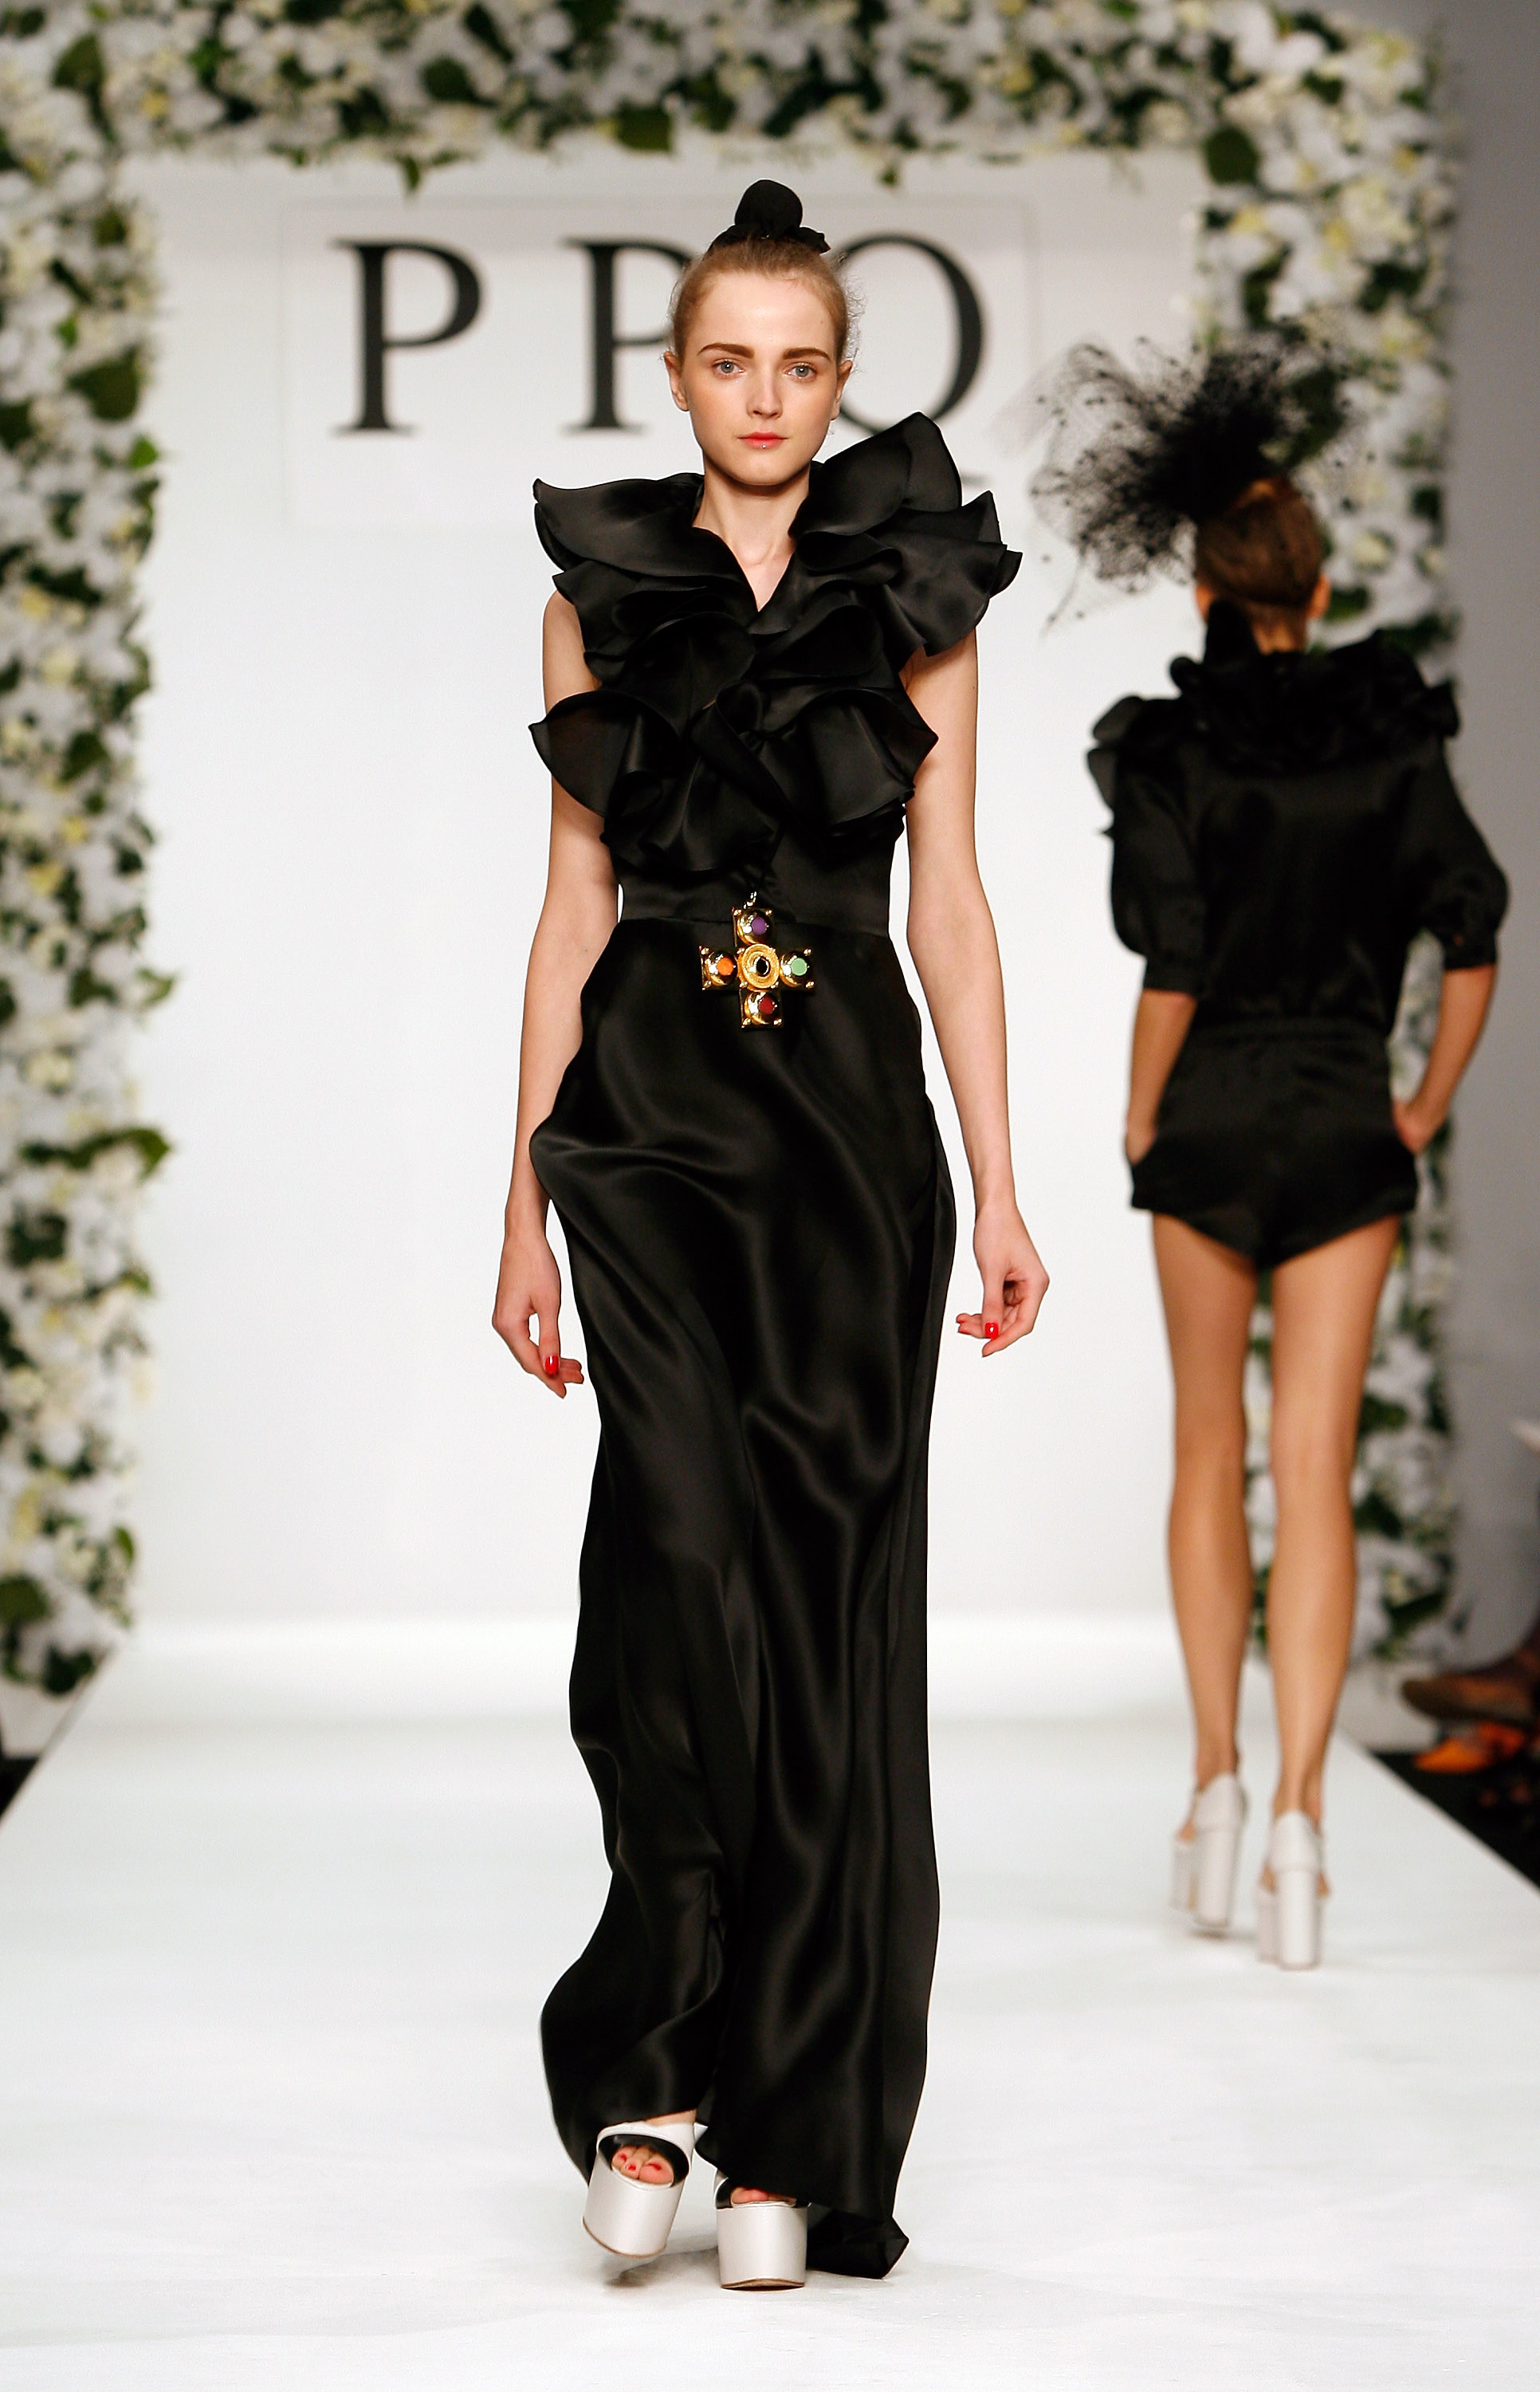 London Fashion Week: PPQ Spring 2009